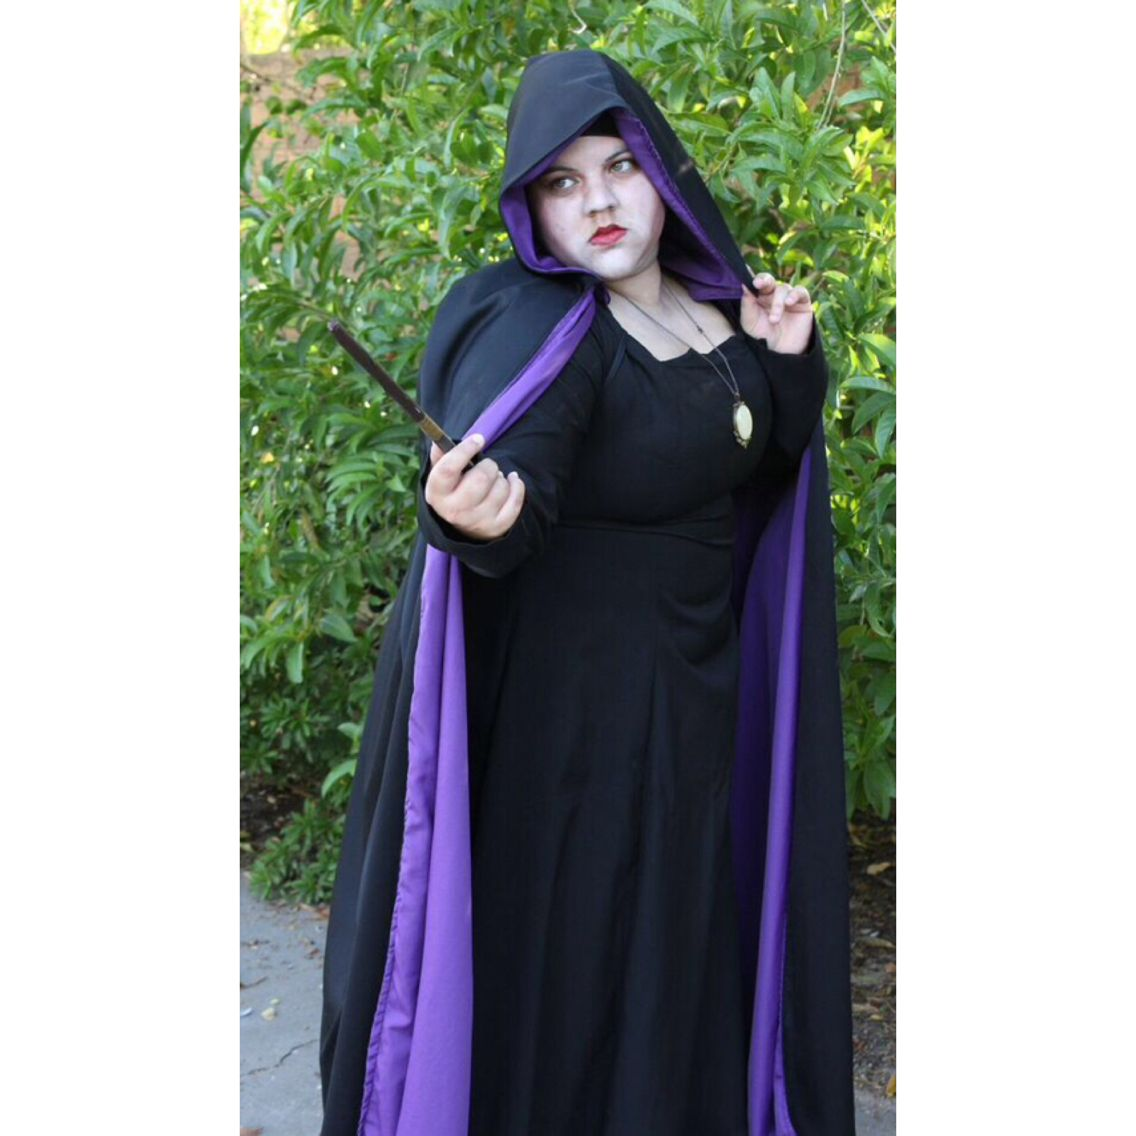 Inspired by Harry Potter- Voldemort in Hooded cloak (Female Version)